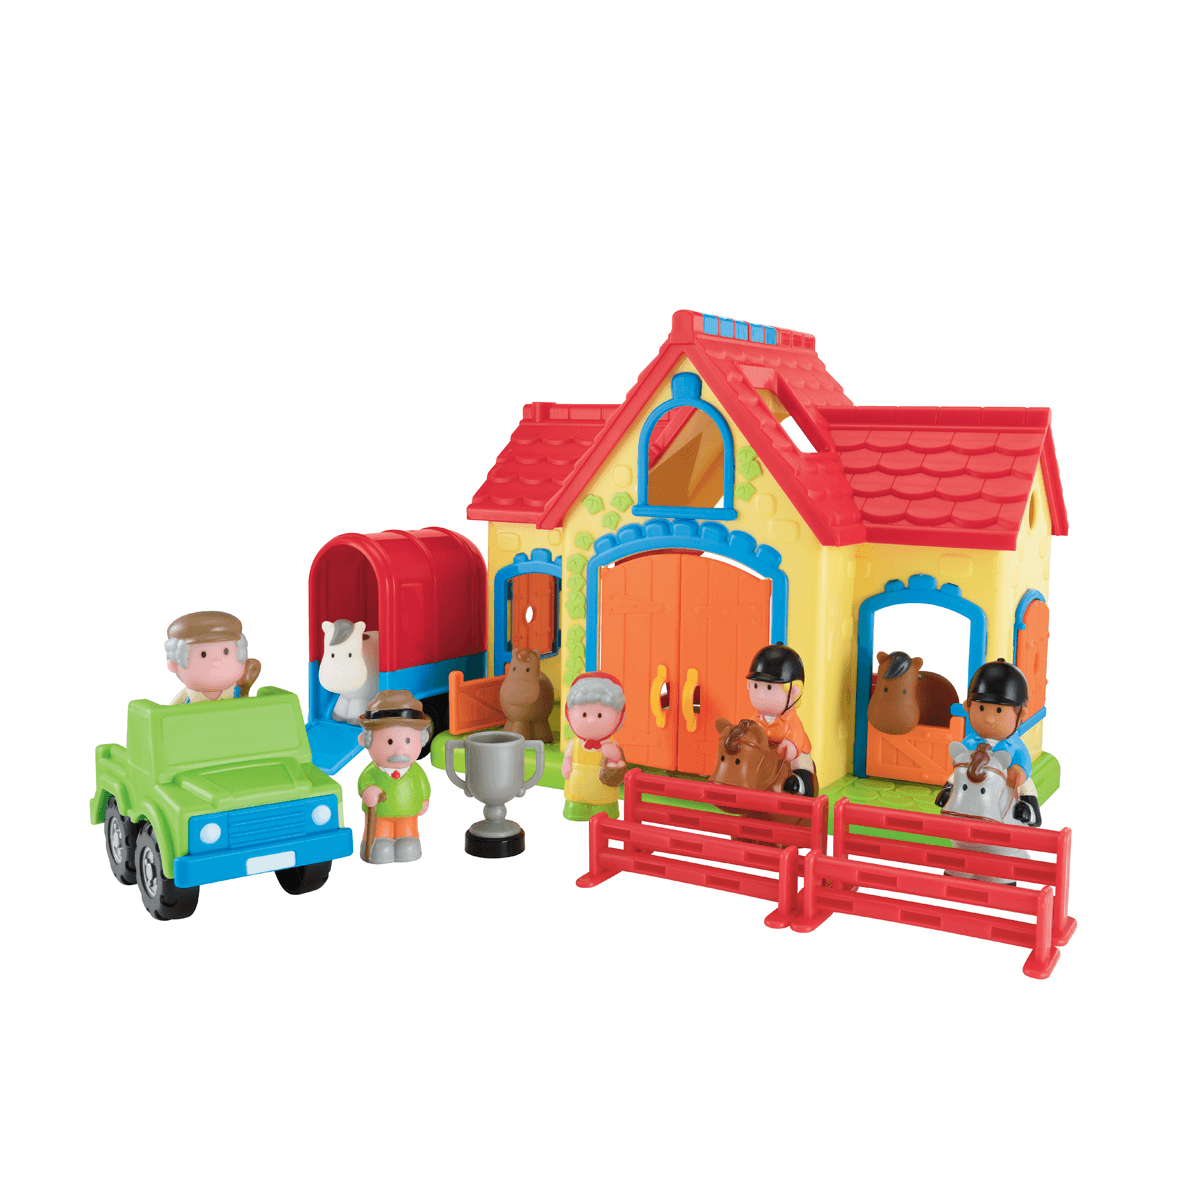 Happyland Stables Playset from Early Learning Center